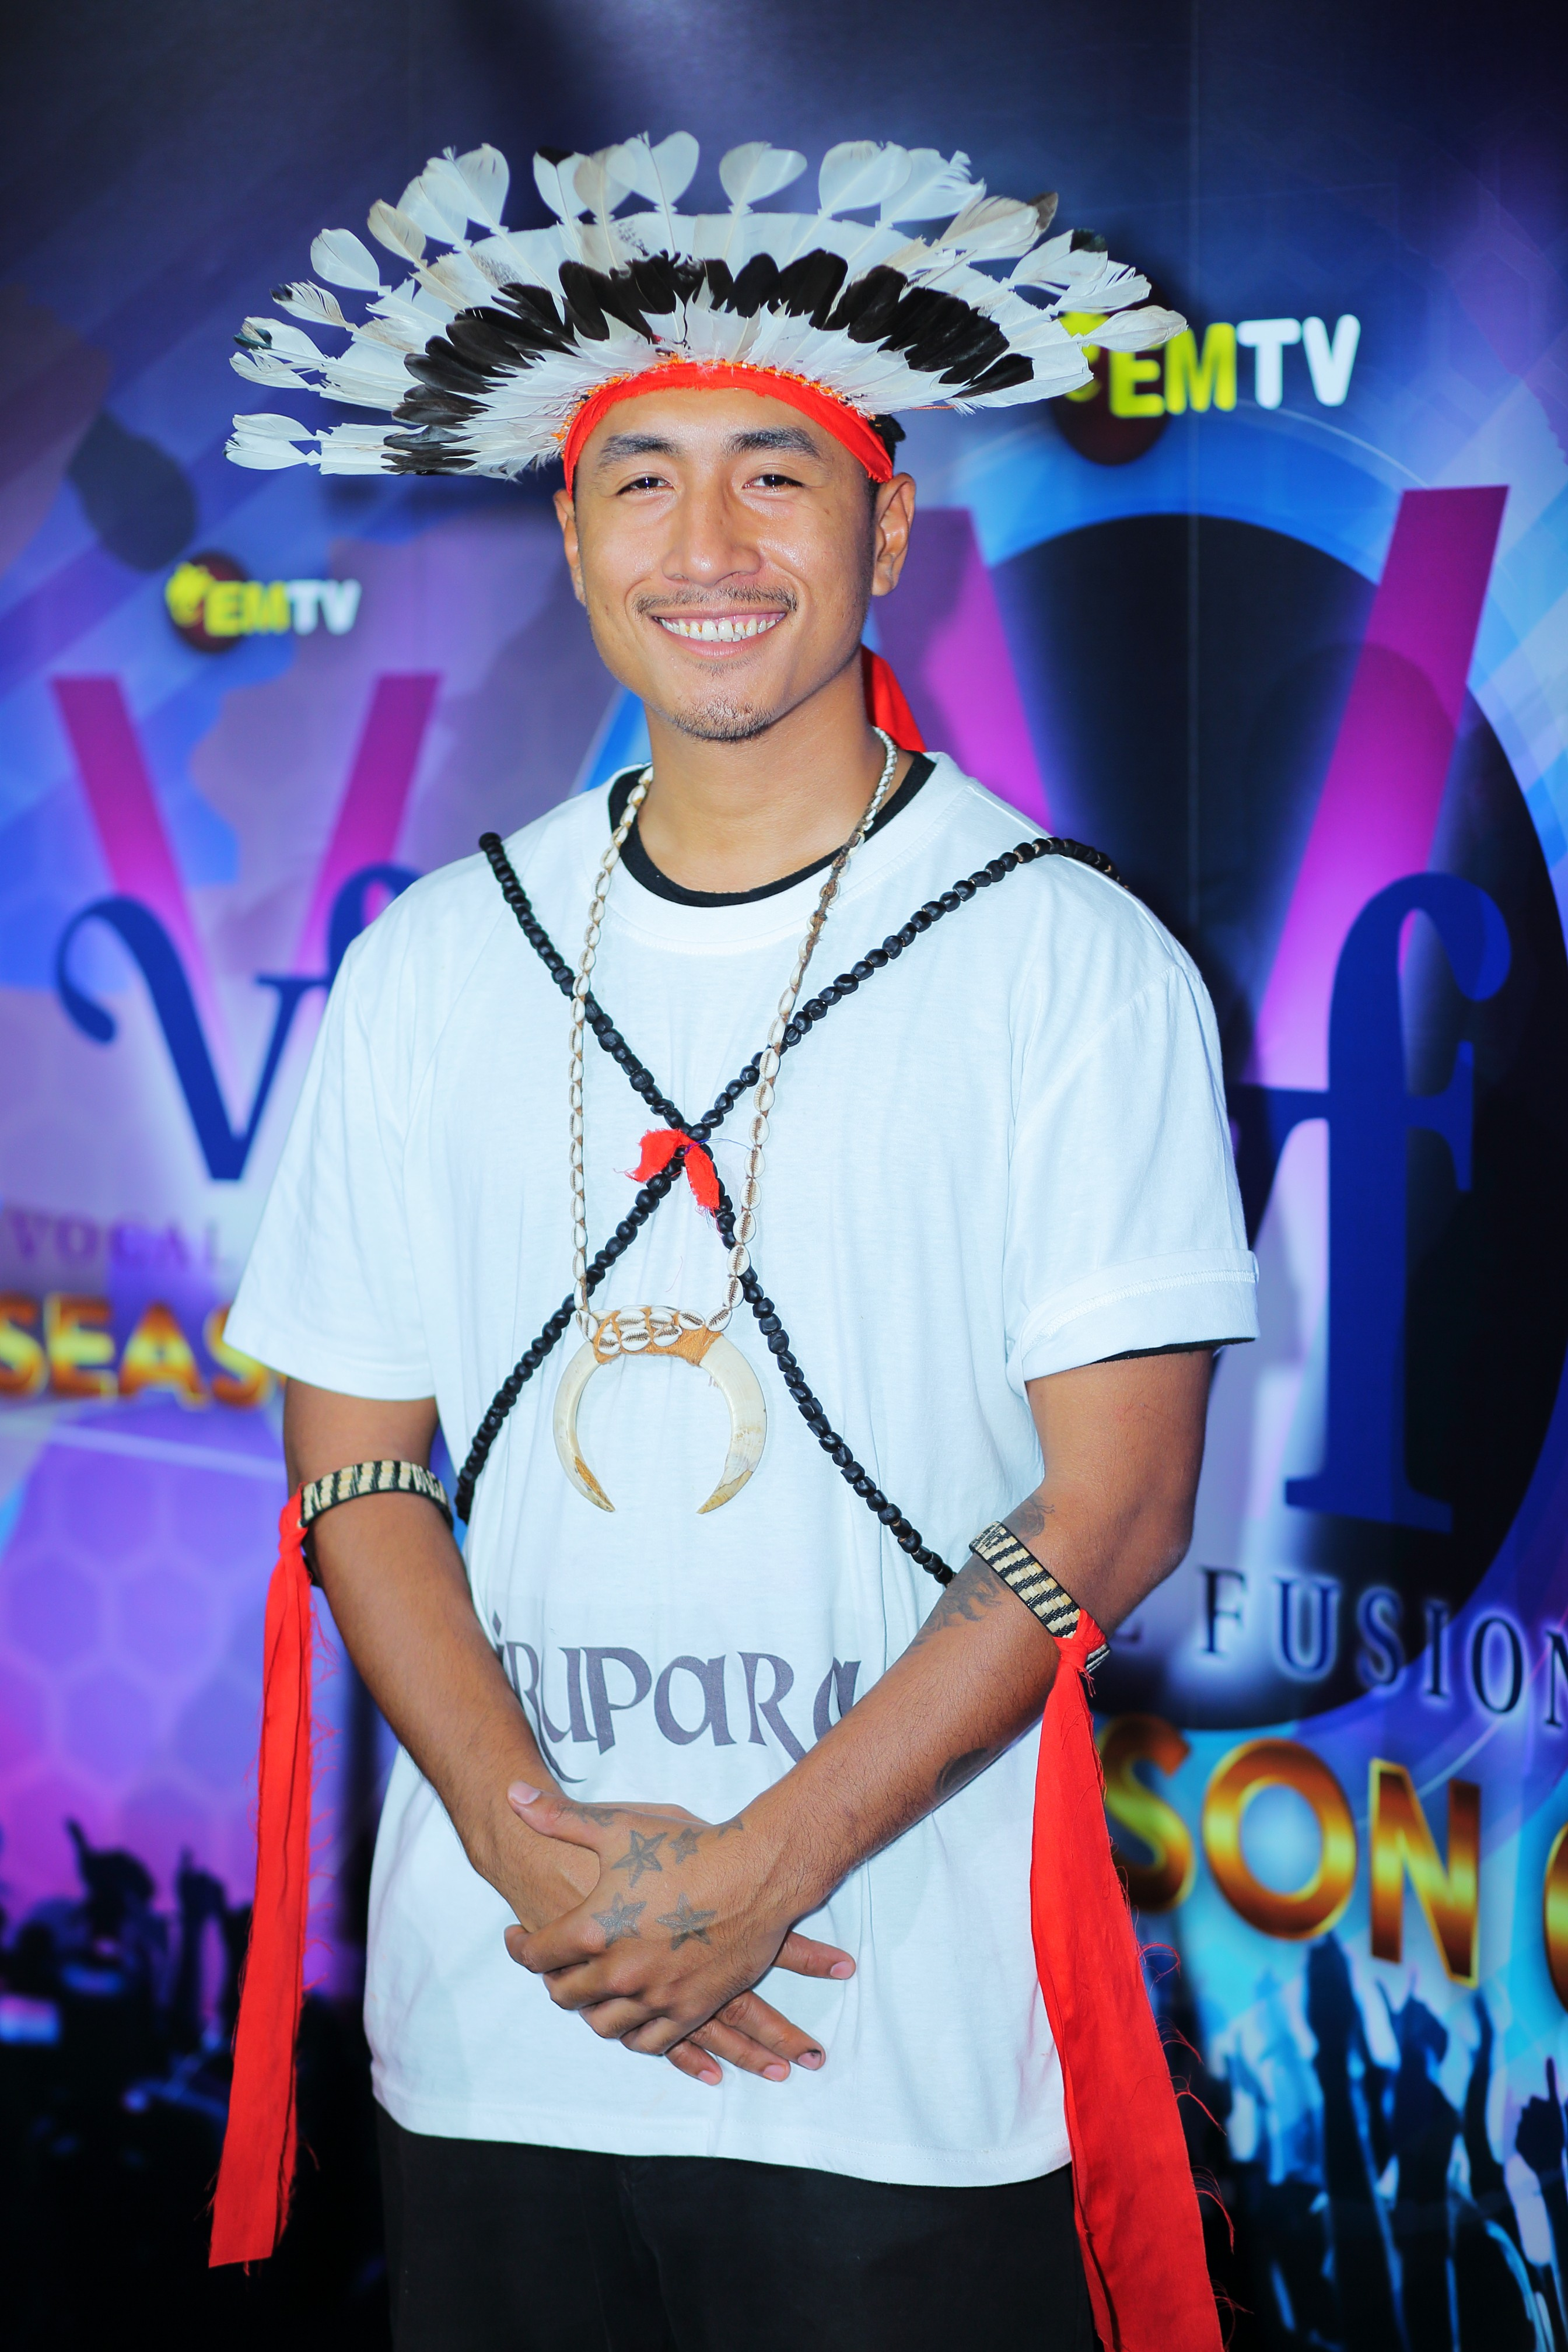 Representing Port Moresby is 24 year old Christopher Vela. Christopher hails from the Central province and loves Boyz II Men. His favourite musical genre is Soul.